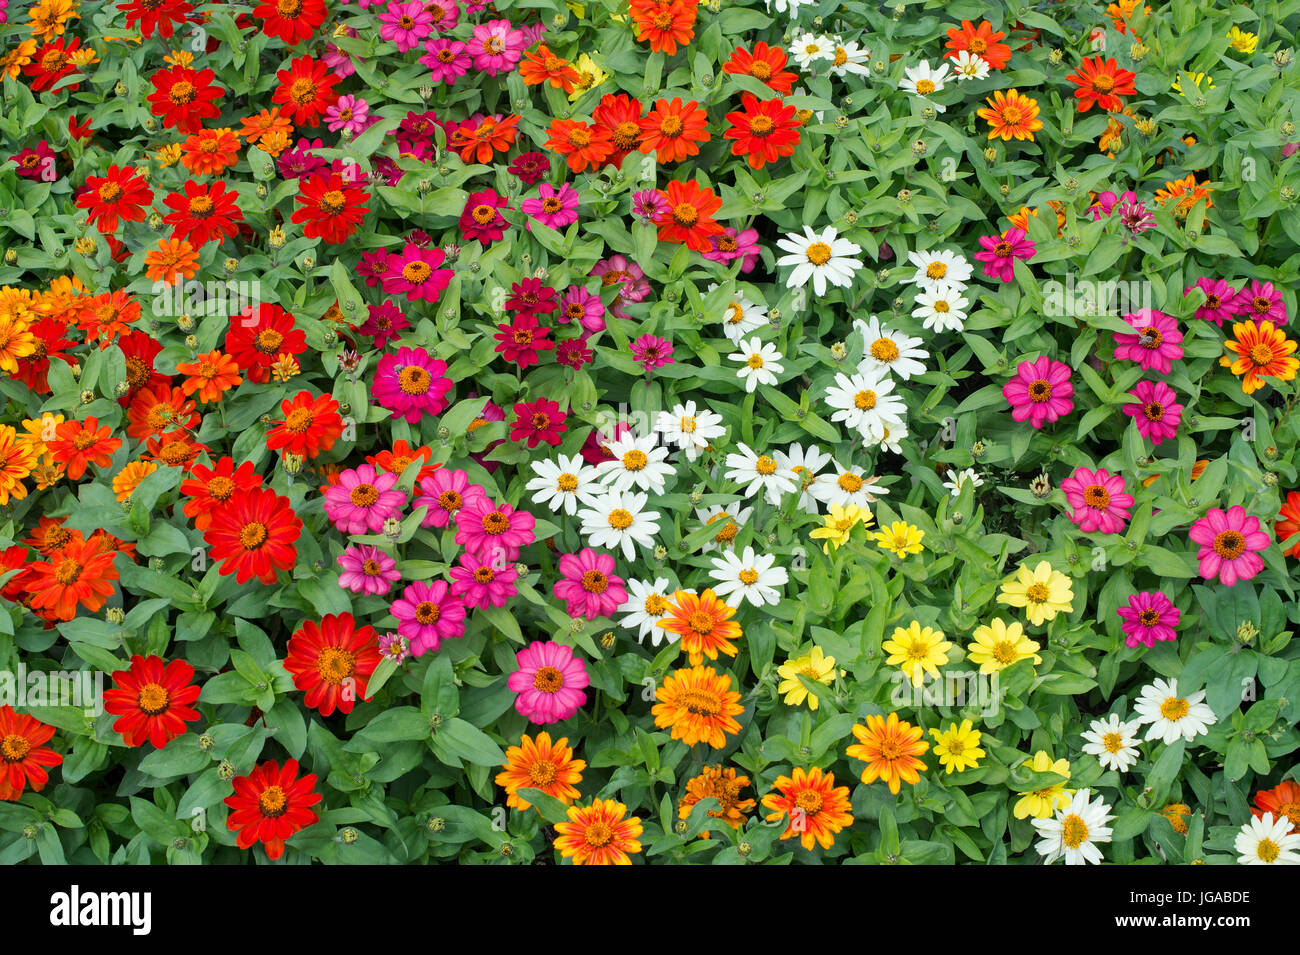 Zinnia hybrida. Zinnia Marylandica 'Zahara mixed' flowers - Stock Image